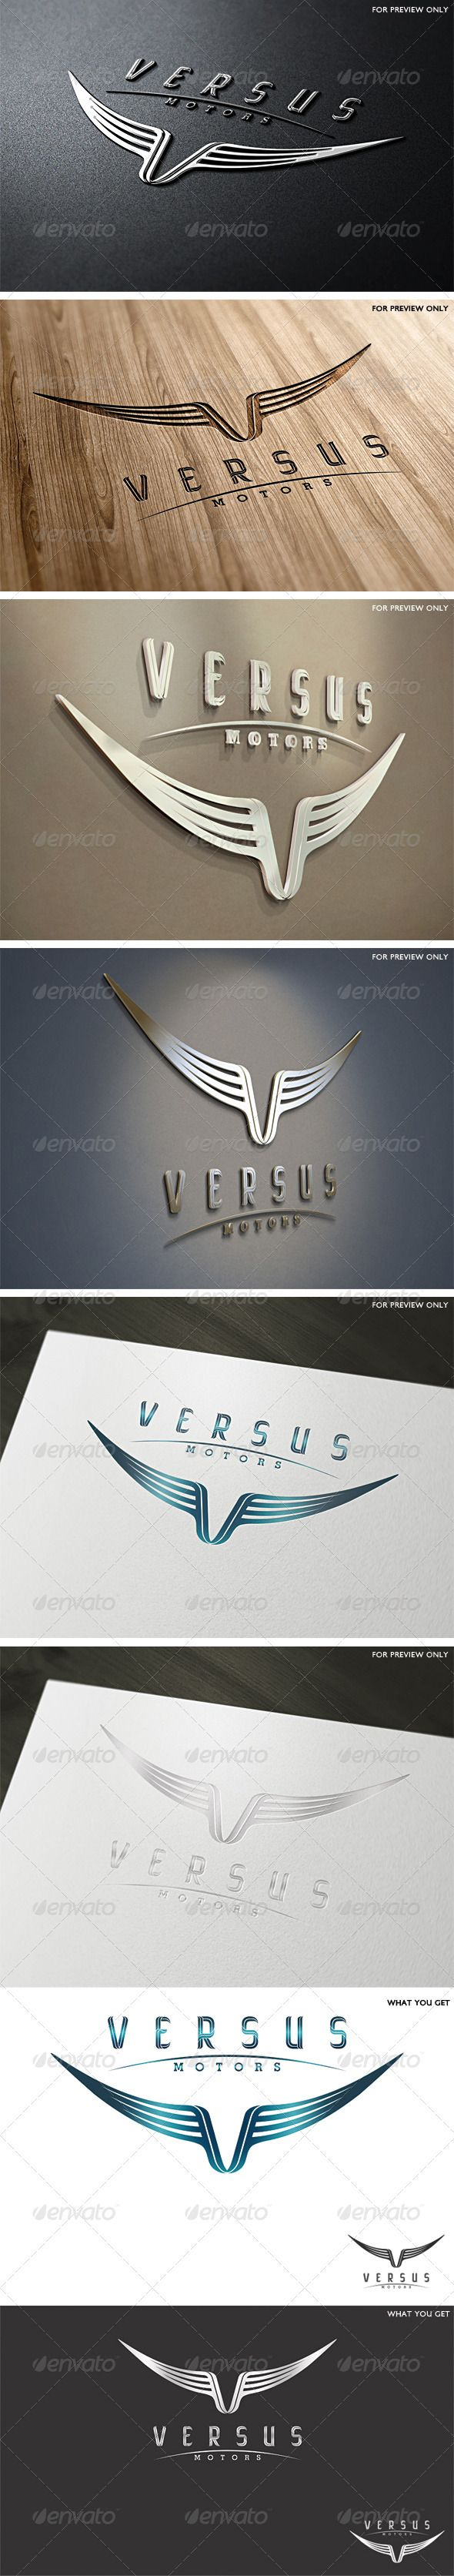 Versus Motors - Logo Design Template Vector #logotype Download it here: http://graphicriver.net/item/versus-motors-logo-template/2449902?s_rank=1?ref=nexion